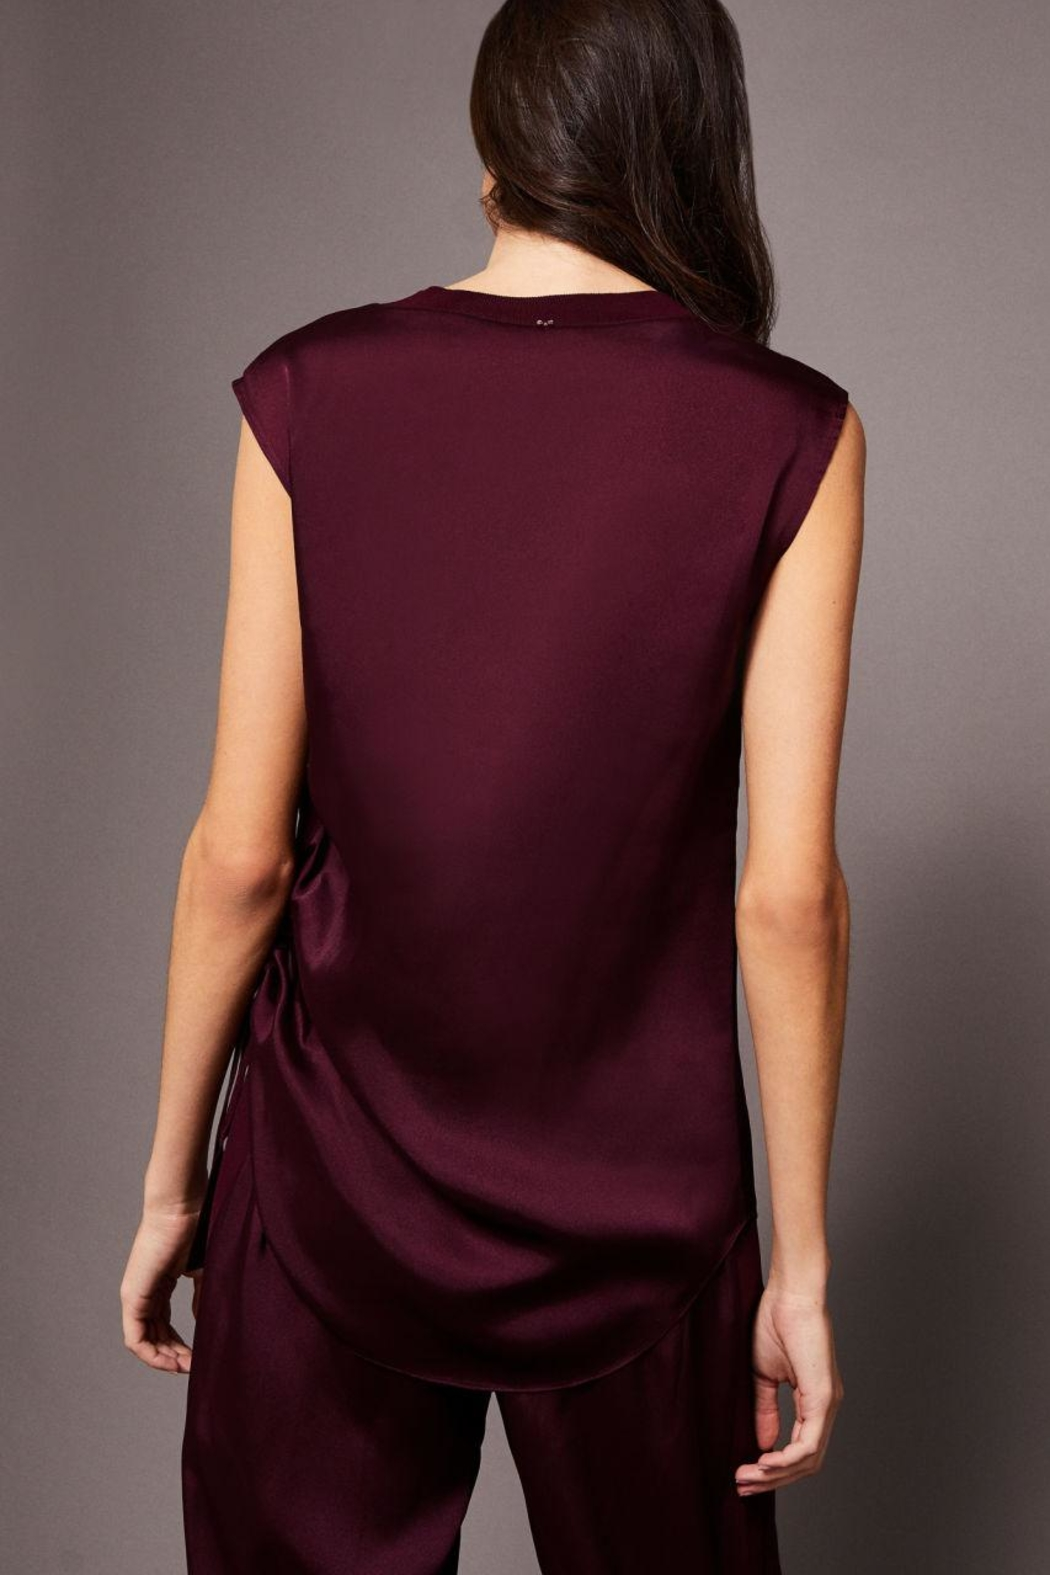 829310f0d091d4 Ted Baker Ruched Side Top from New Jersey by Chelsea Gifts — Shoptiques